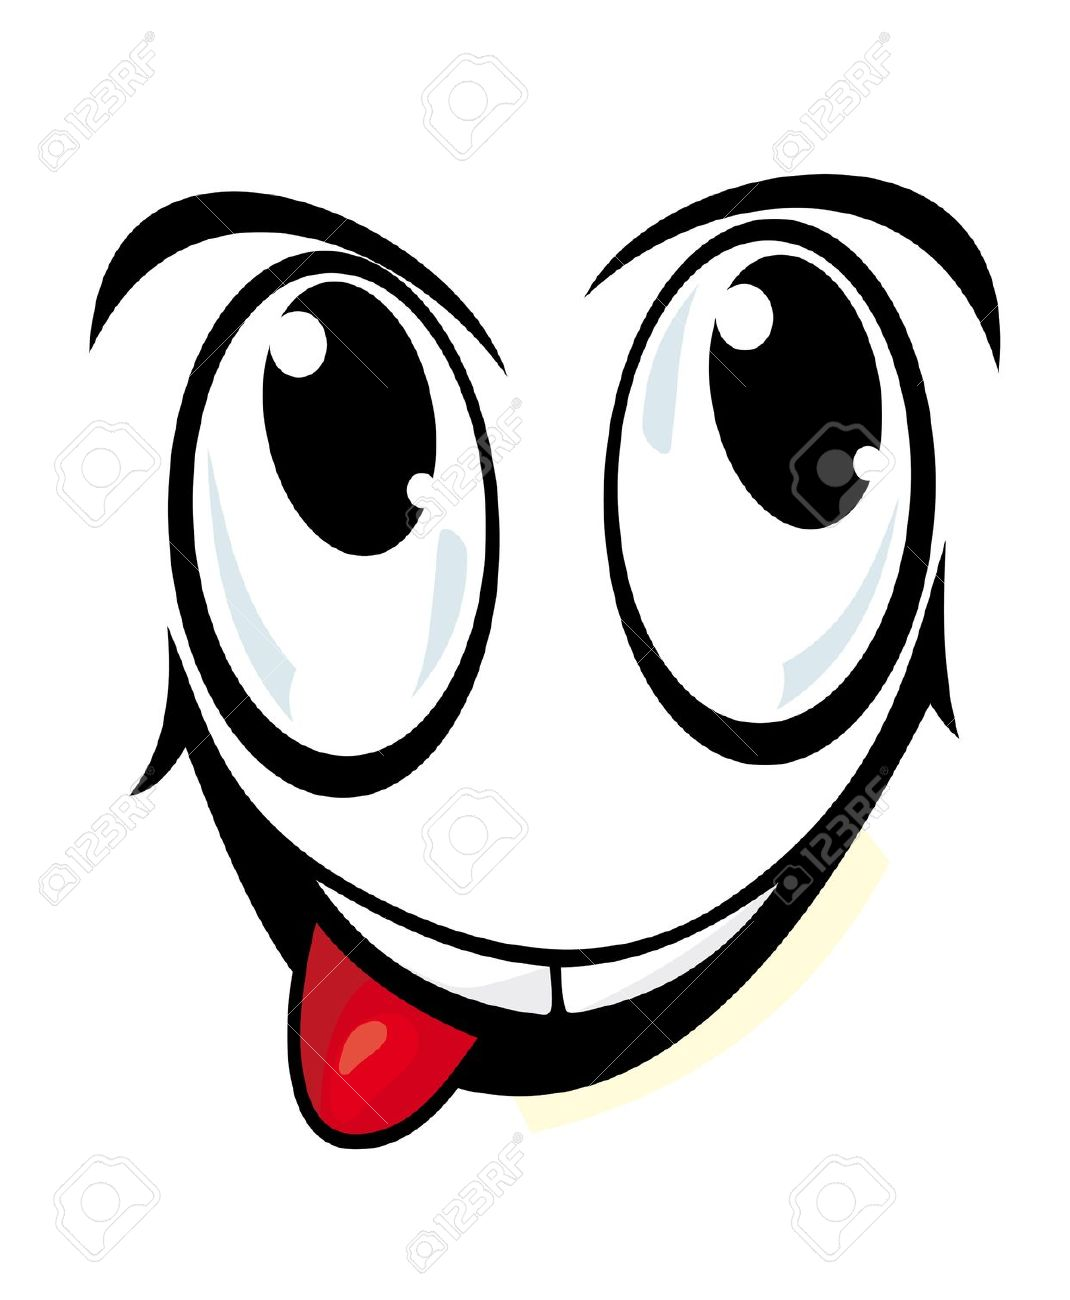 Smiling eyes clipart.